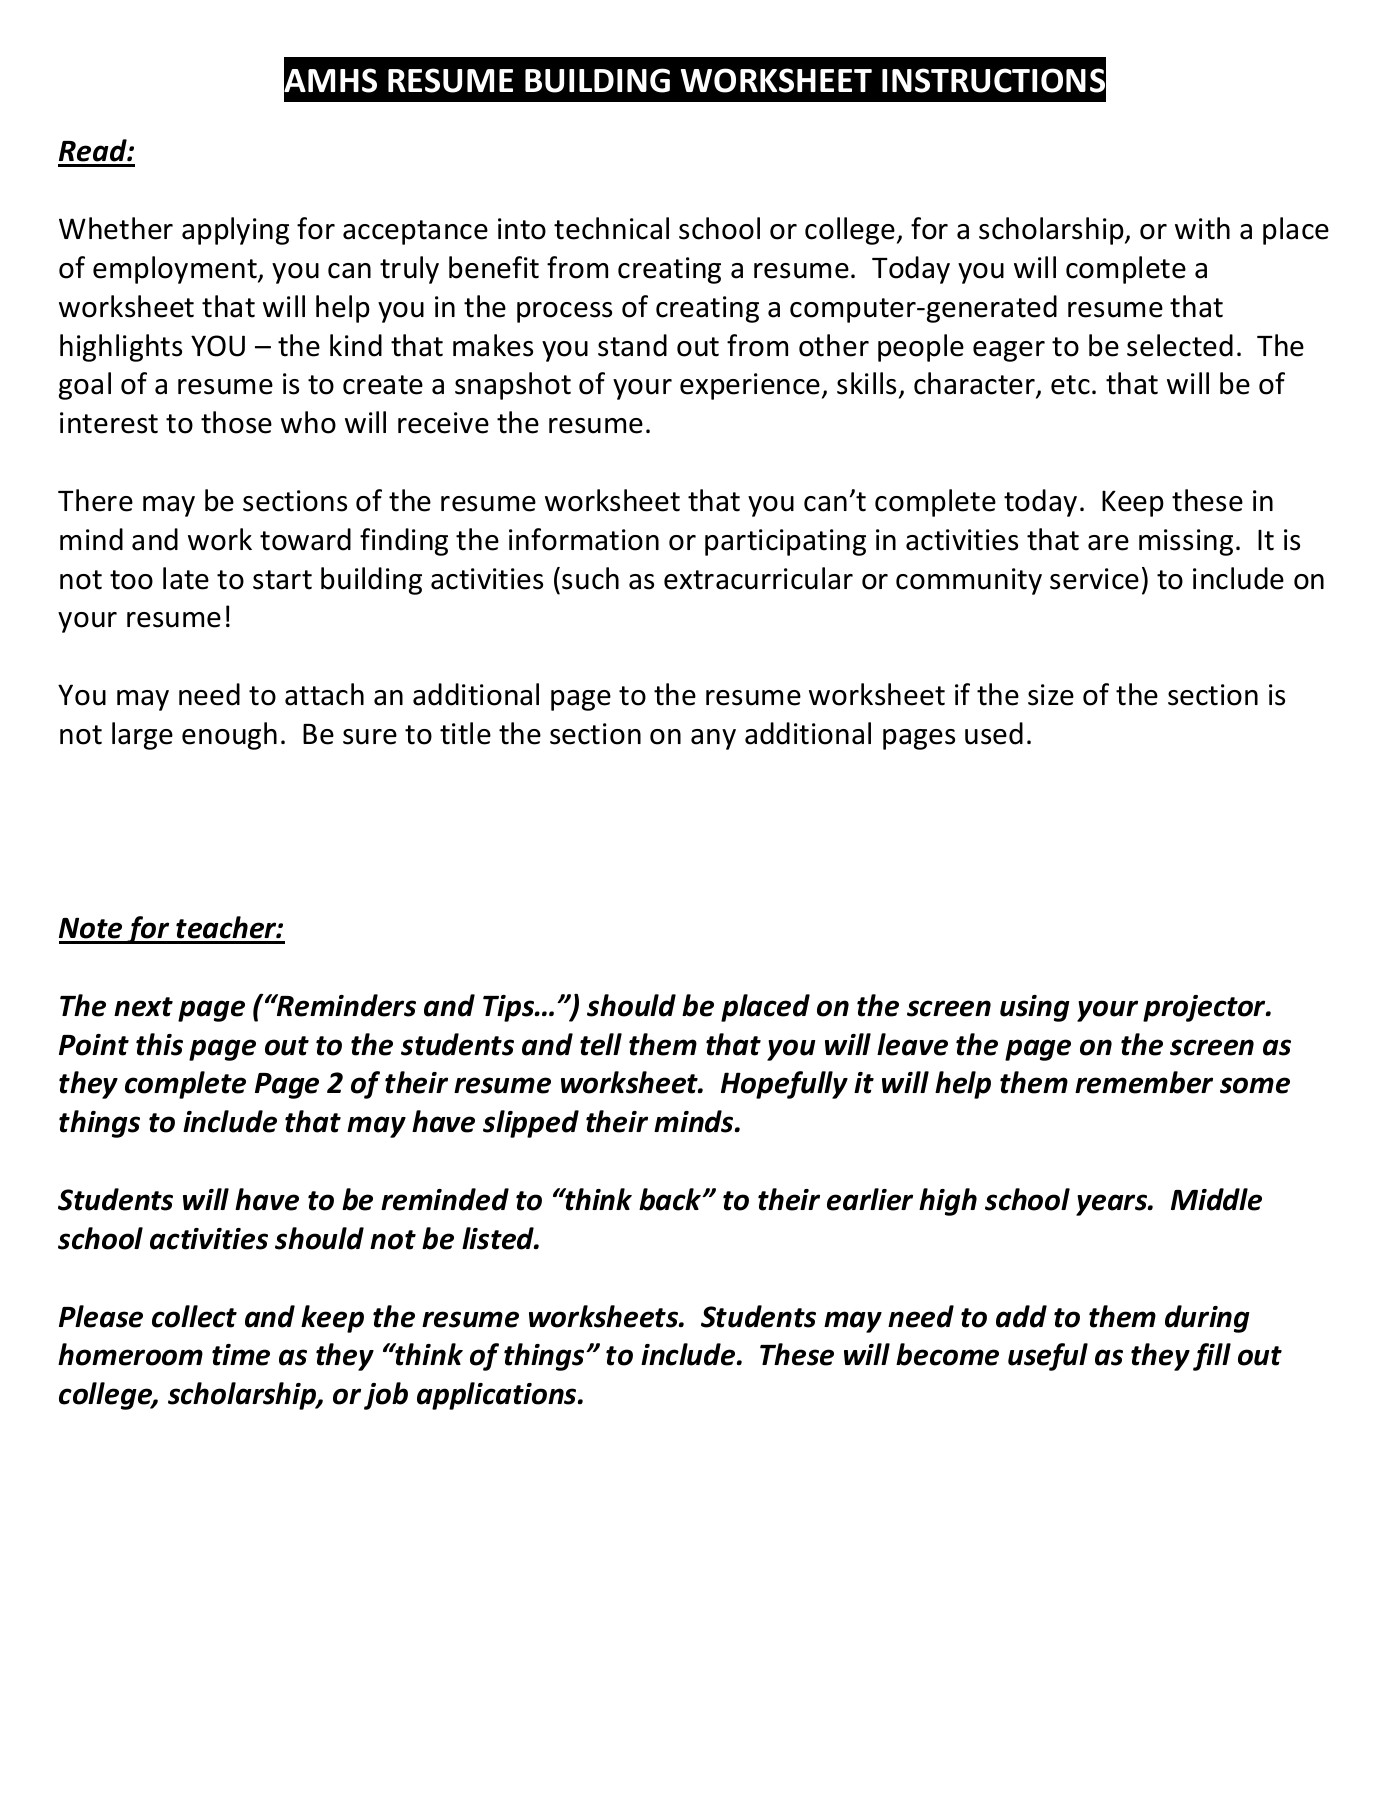 Resume Pages 1 4 Text Version Anyflip